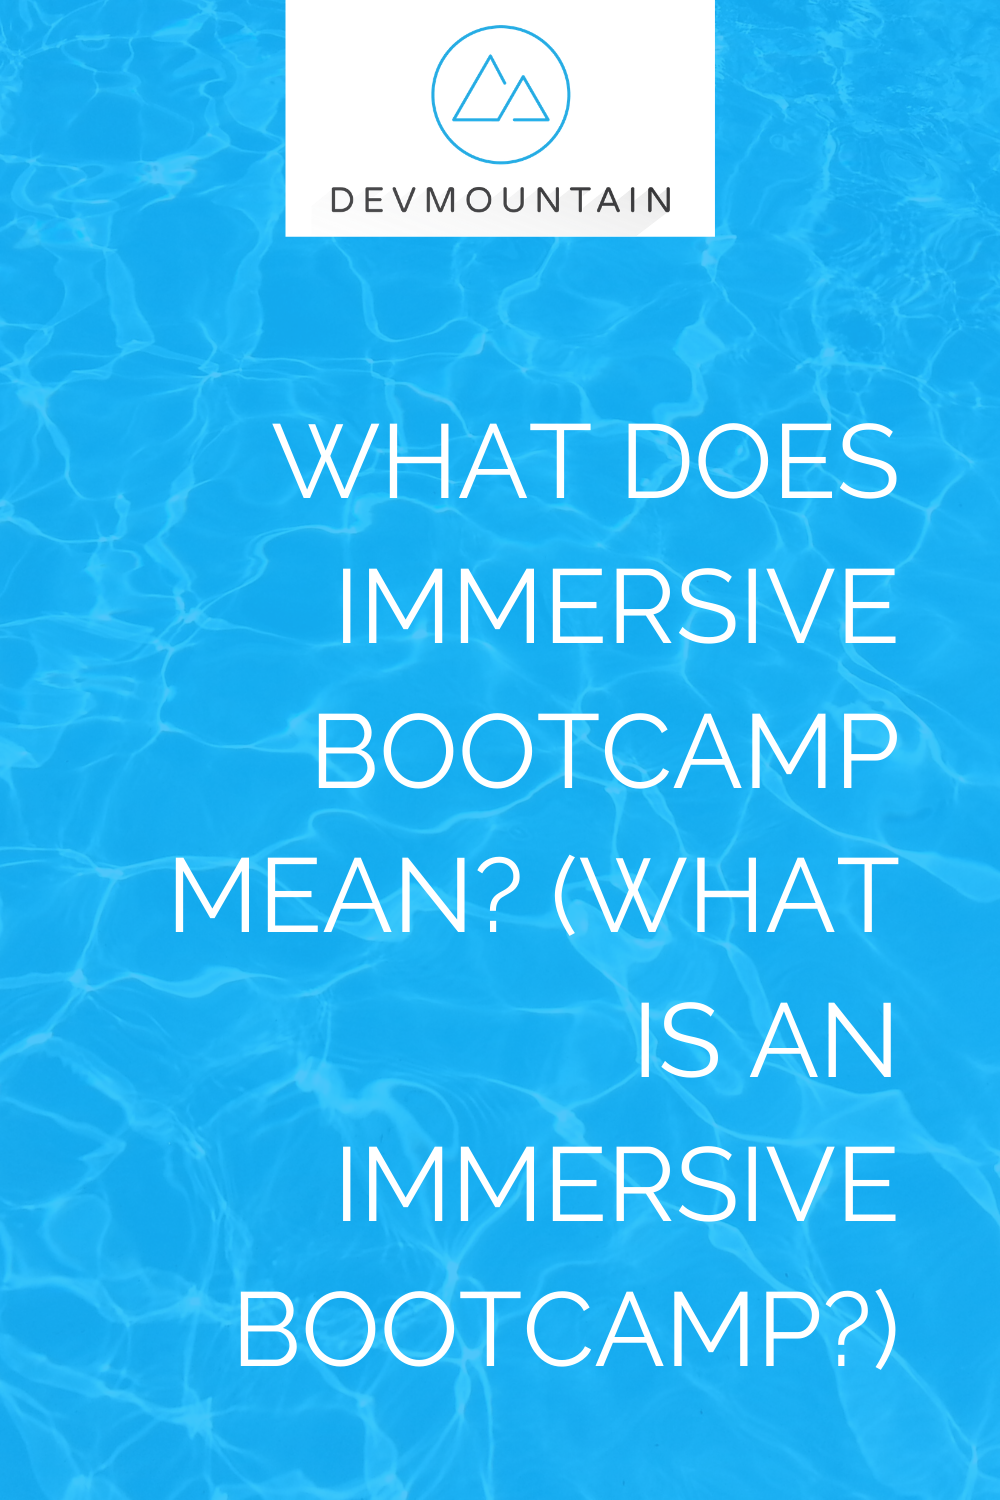 What Does Immersive Bootcamp Mean? (What Is an Immersive Bootcamp?)